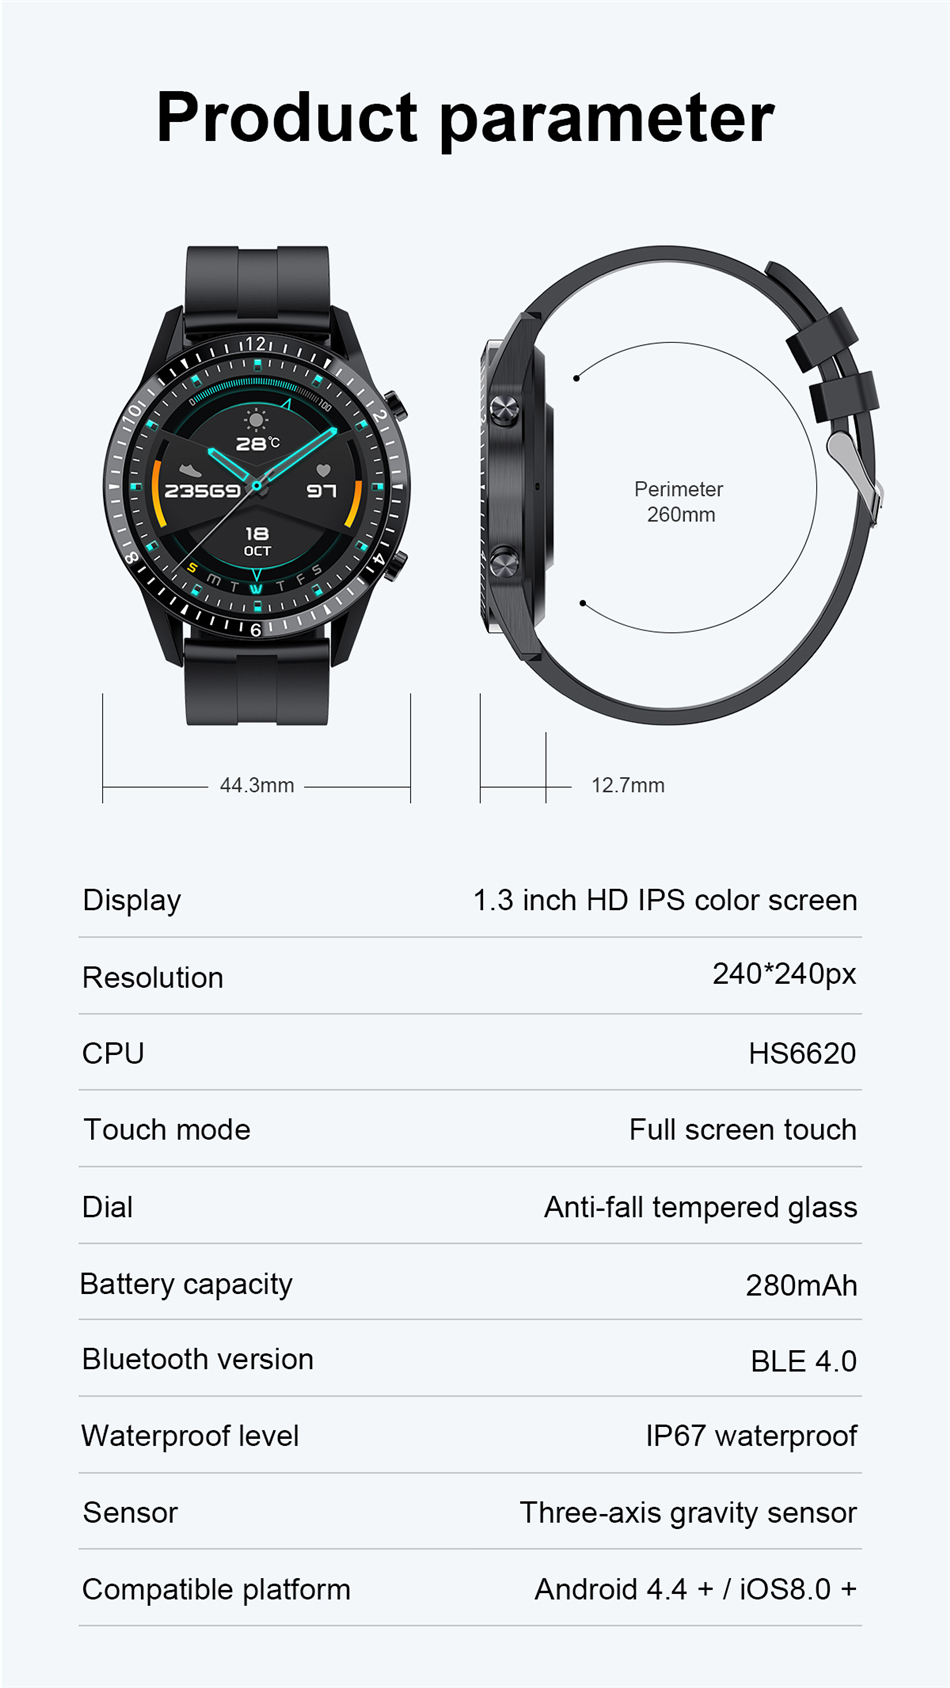 Hbf425333467b464fa4c11acfb27c0e28R 2021 Smart Watch Phone Full Touch Screen Sport Fitness Watch IP68 Waterproof Bluetooth Connection For Android ios smartwatch Men